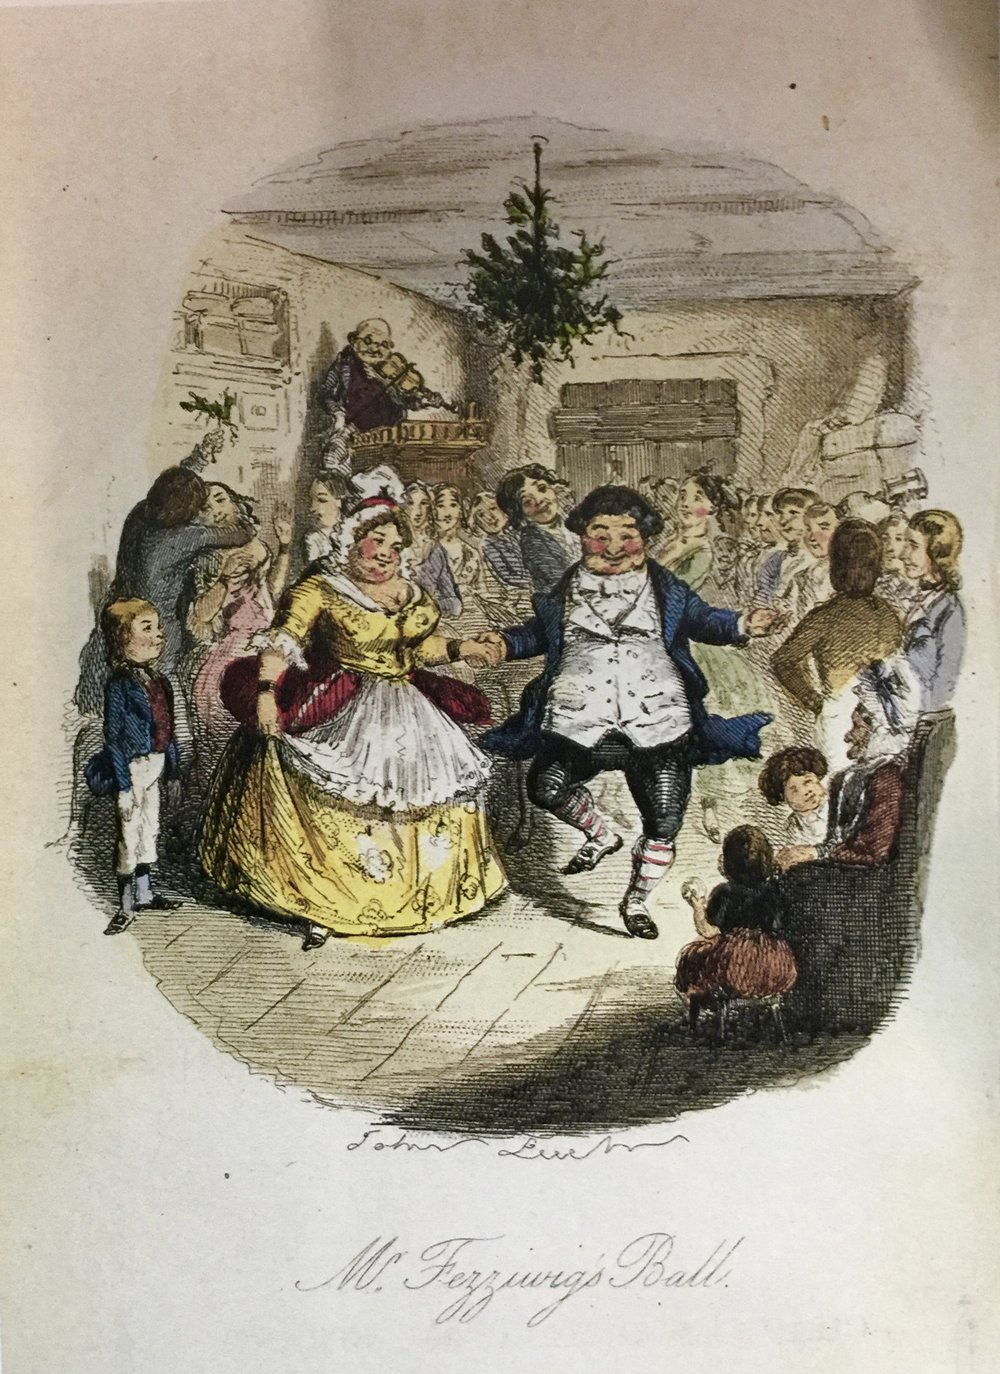 Join us December 19th, 2018 for a celebration of the 175th Anniversary of A Christmas Carol at the Charles Dickens Museum of London with Lucinda Dickens Hawksley and friends….. - Festivities, holiday treats, tours, celebrations, readings, and museum talks to mark the special occasion!We will be giving a special talk about our  global Macy's sponsored, modern theatrical production, as well as, our original Dickens education unit serving children in shelters, Your Stories Matter.See you in London and thank you for being the best part of what we do!